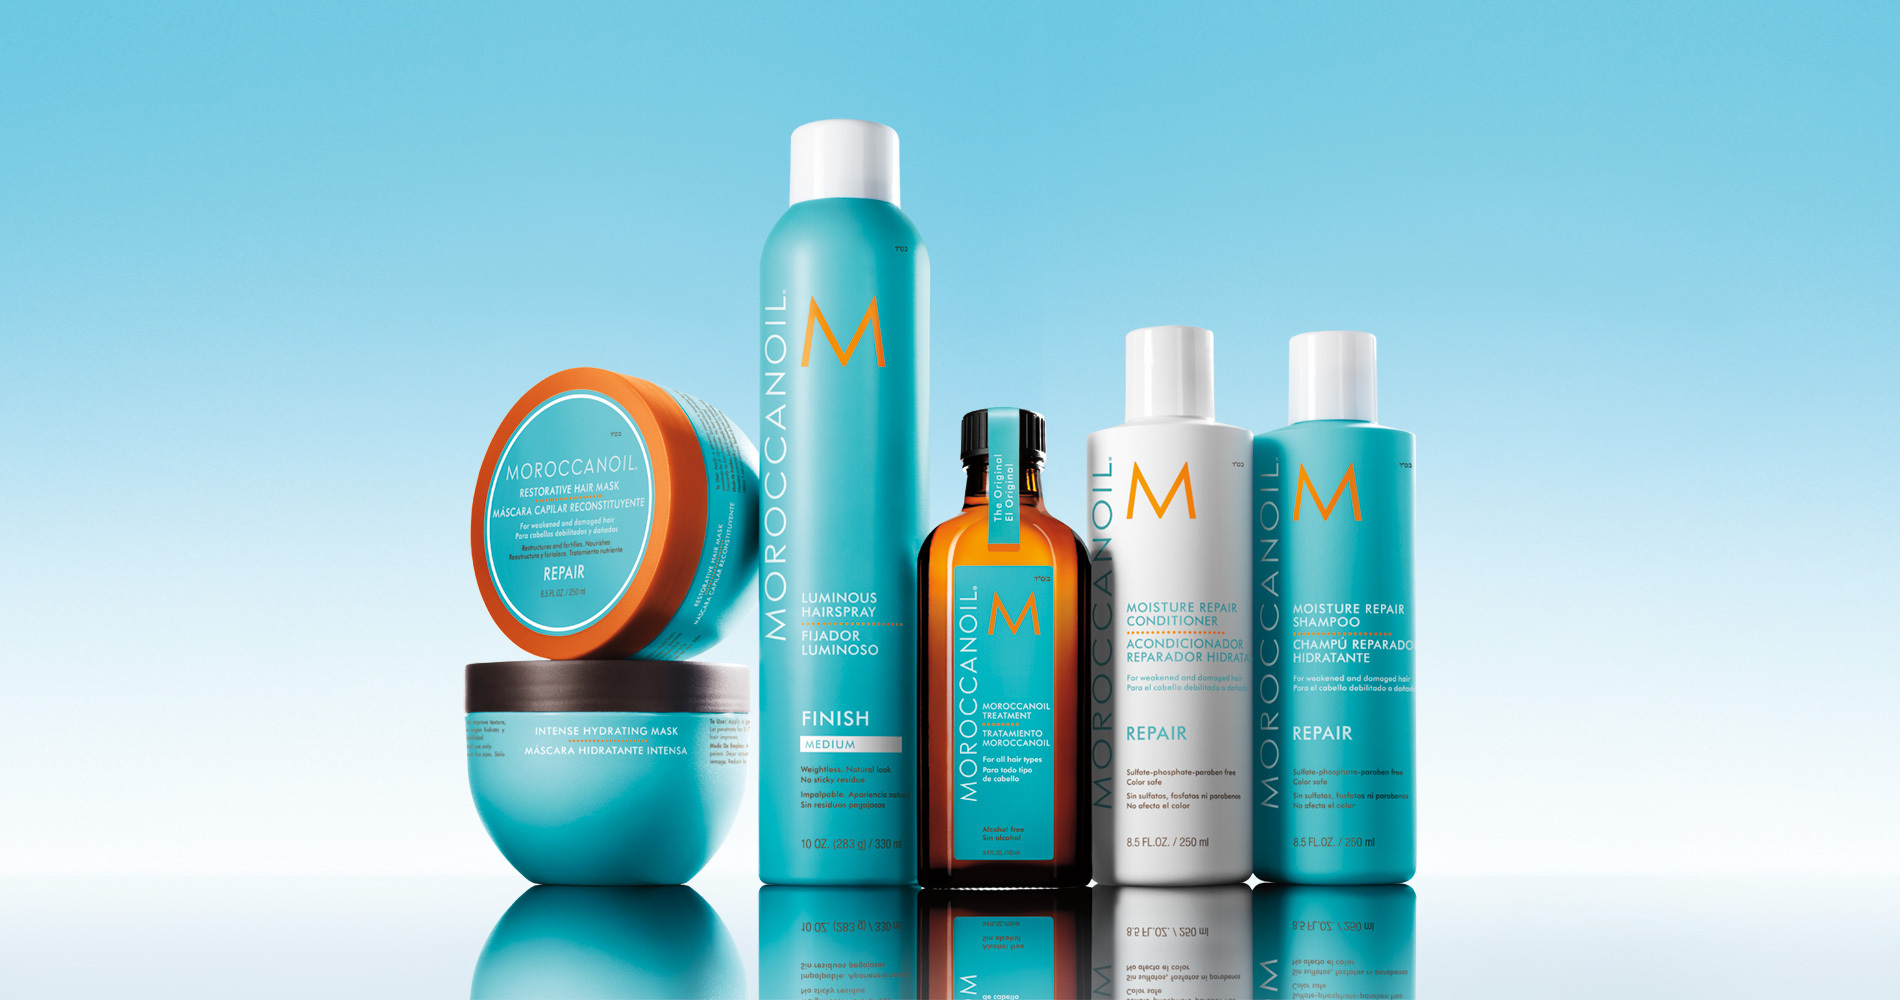 http://hairbyadelle.files.wordpress.com/2012/03/moroccan-oil-products.jpg